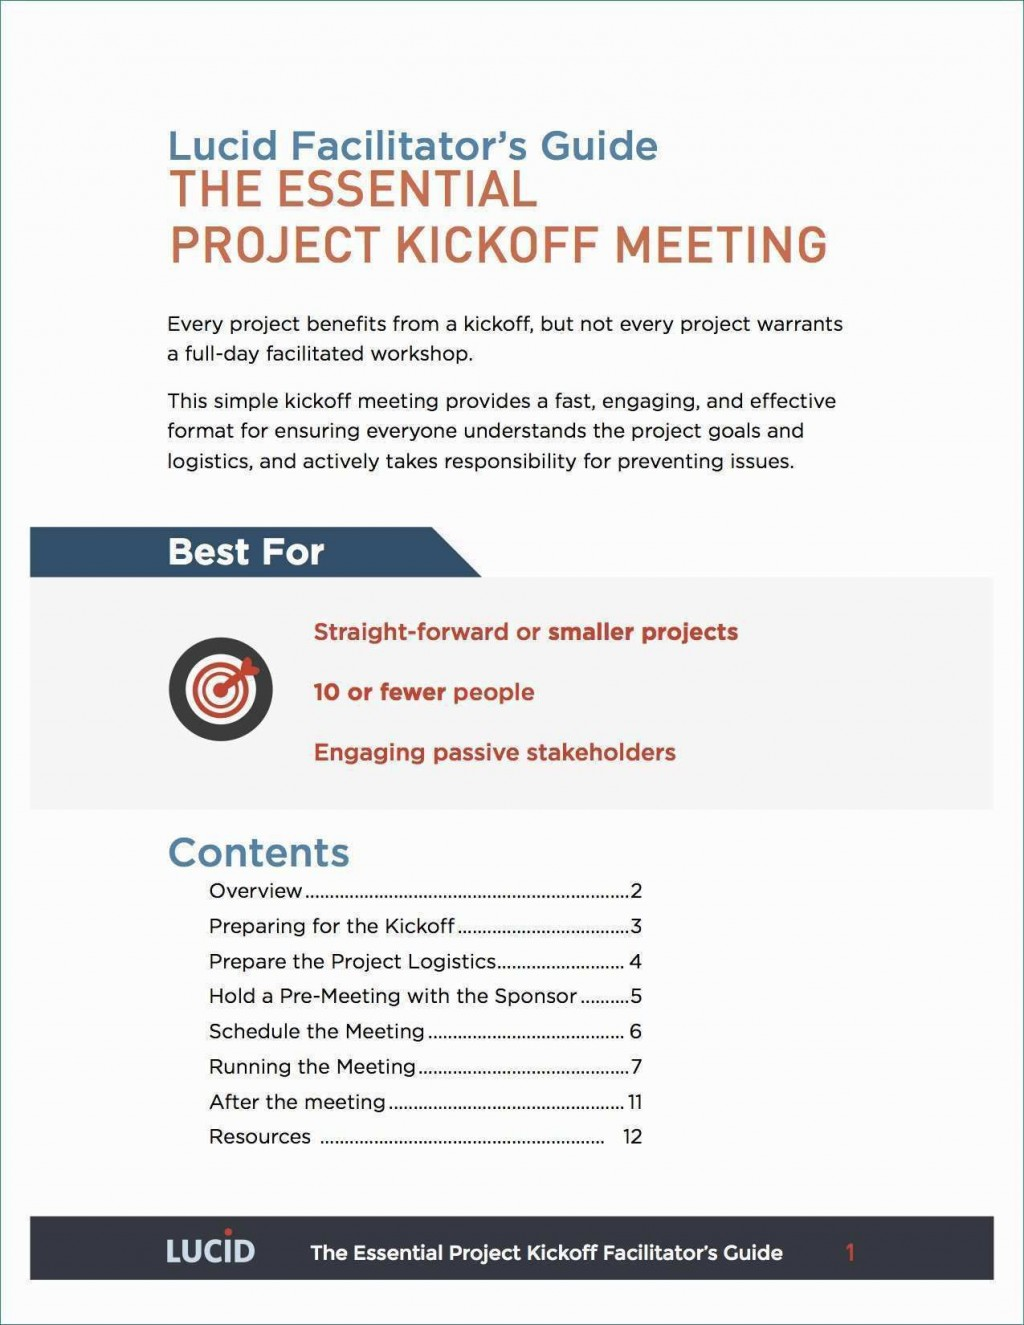 000 Unusual Project Kickoff Meeting Agenda Example Photo  Management TemplateLarge